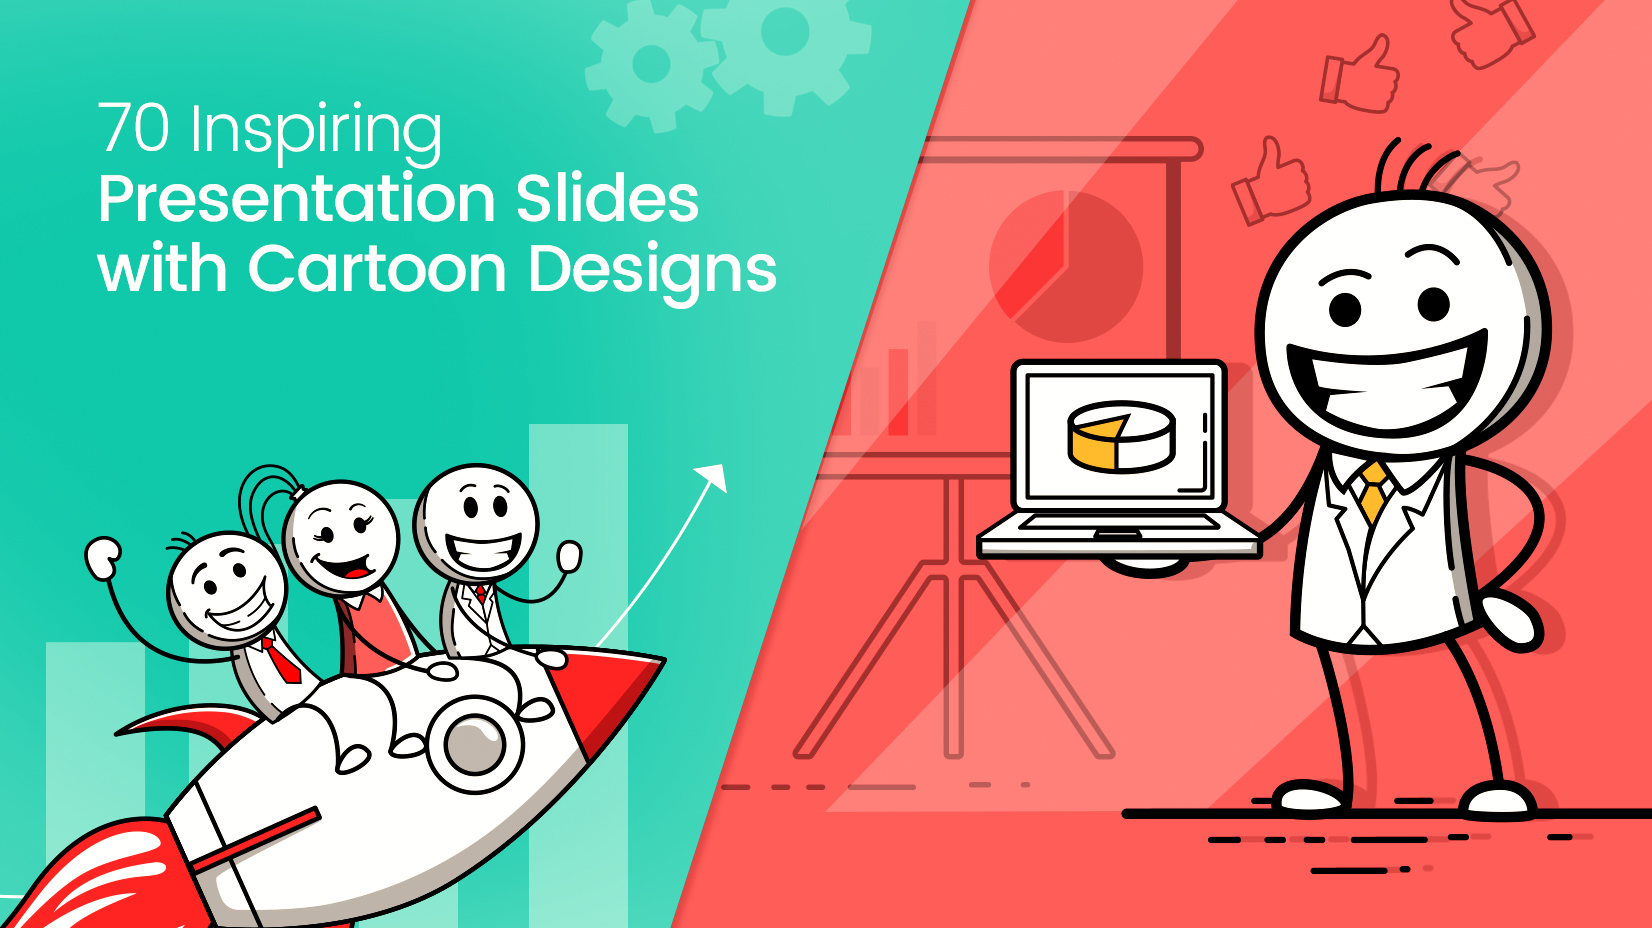 70 Inspiring Presentation Slides with Cartoon Designs